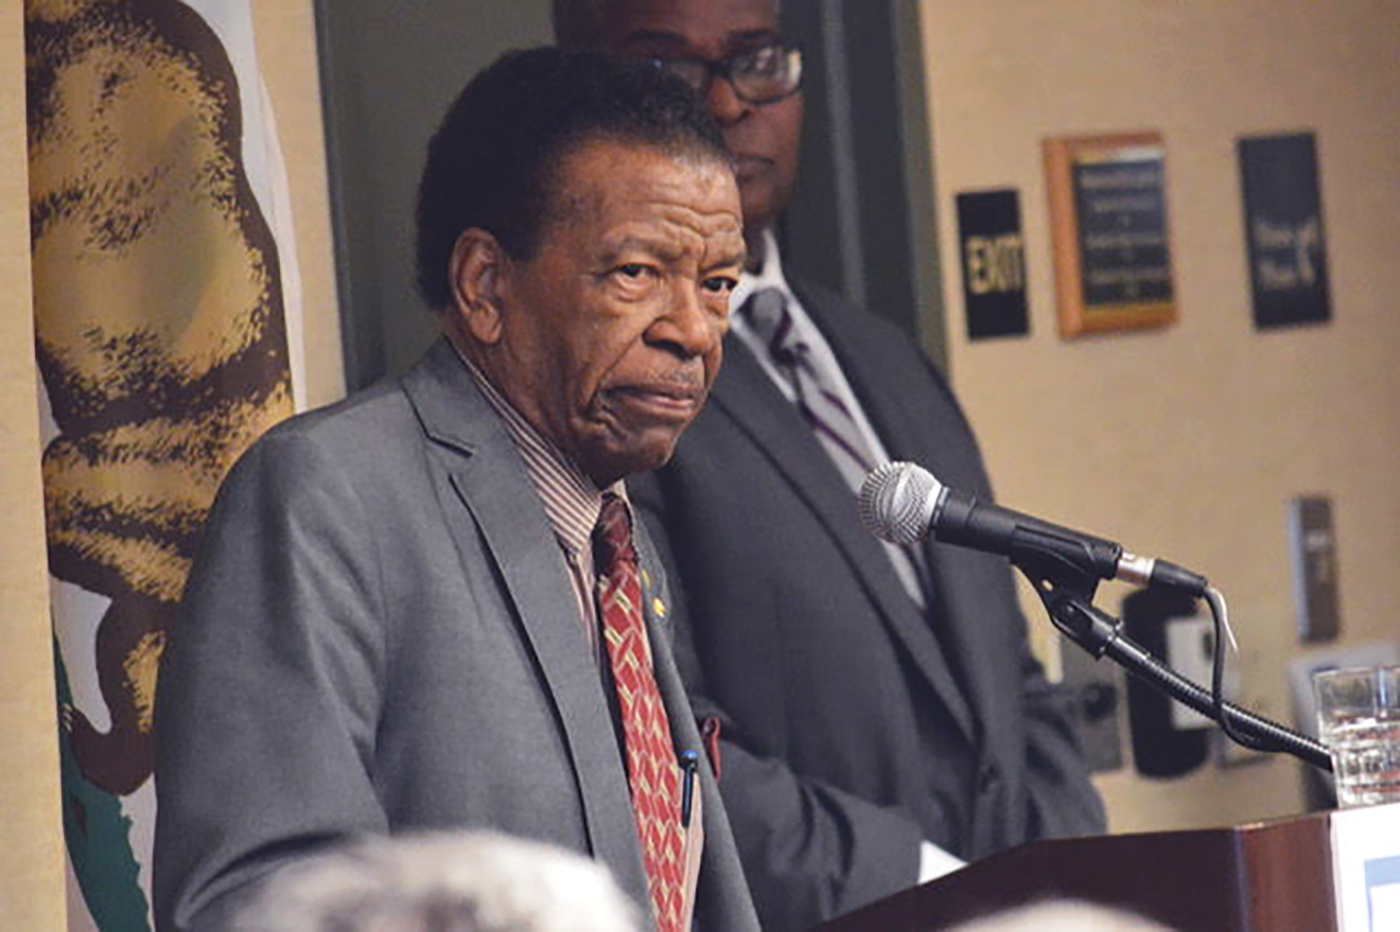 William Paterson, EBMUD's Vice President of the Board of Directors, says that water is a huge issue in his ward in Oakland. About 2,300 of his constituents get assistance to pay for water. (Antonio R. Harvey photo)